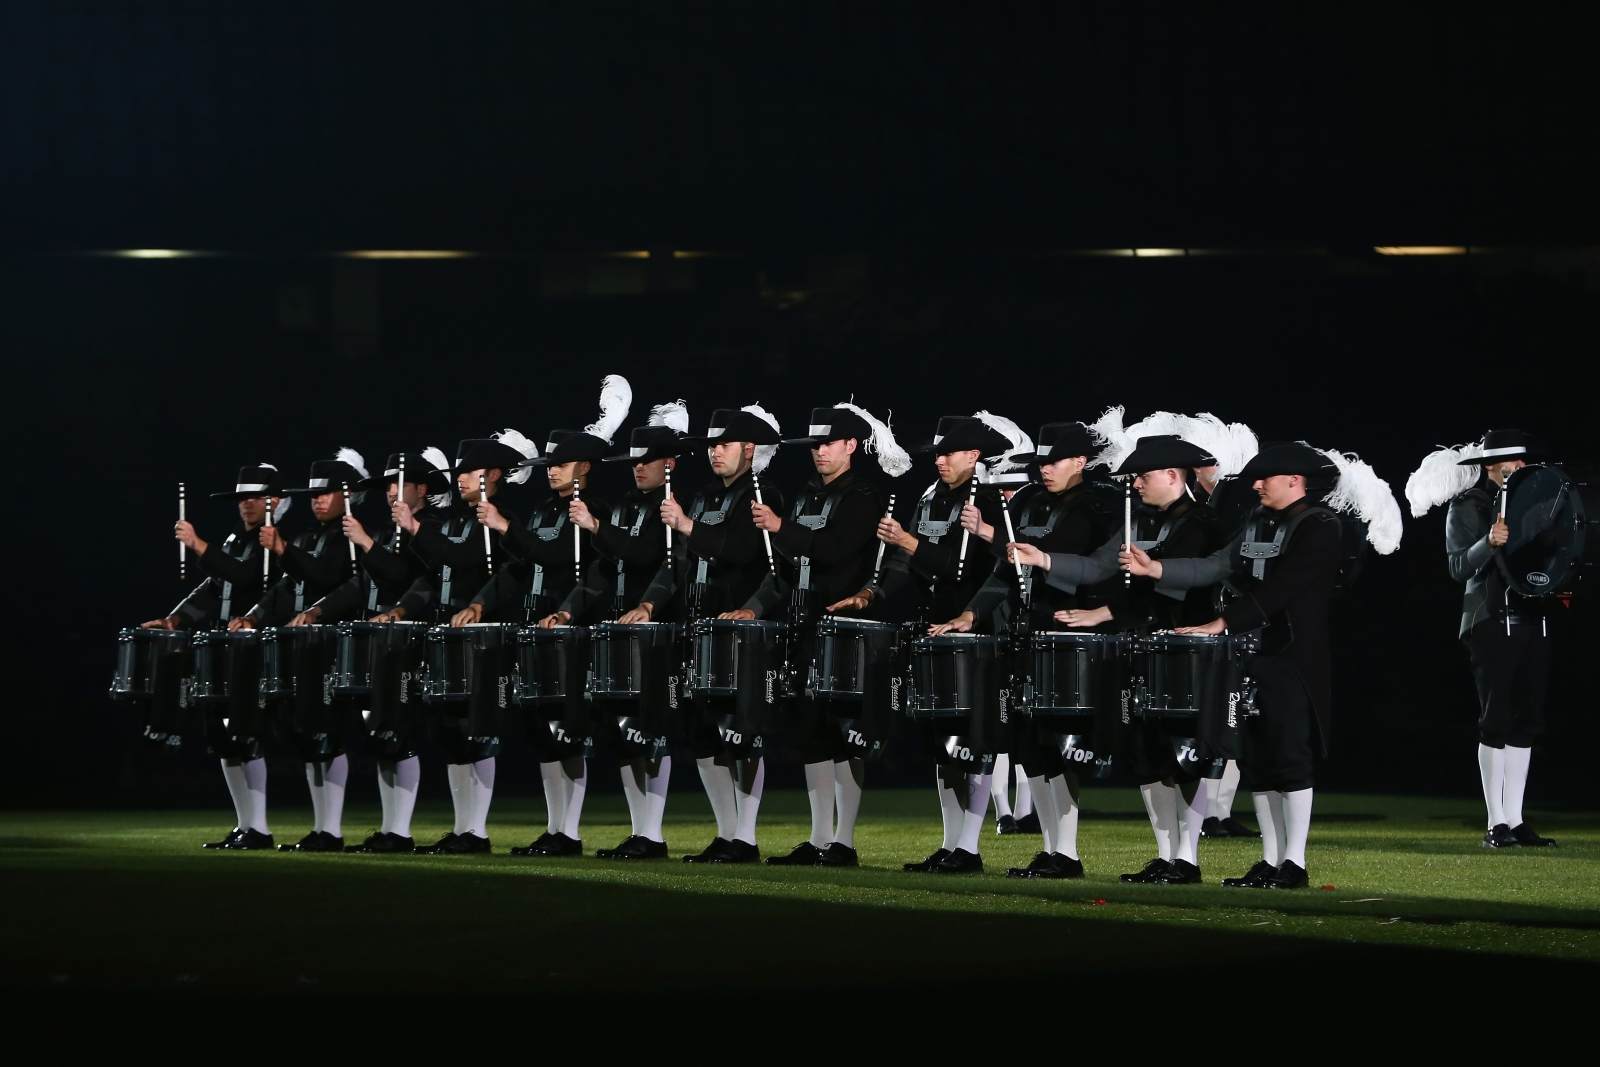 Royal edinburgh military tattoo 2016 dates programme and for Royal edinburgh military tattoo